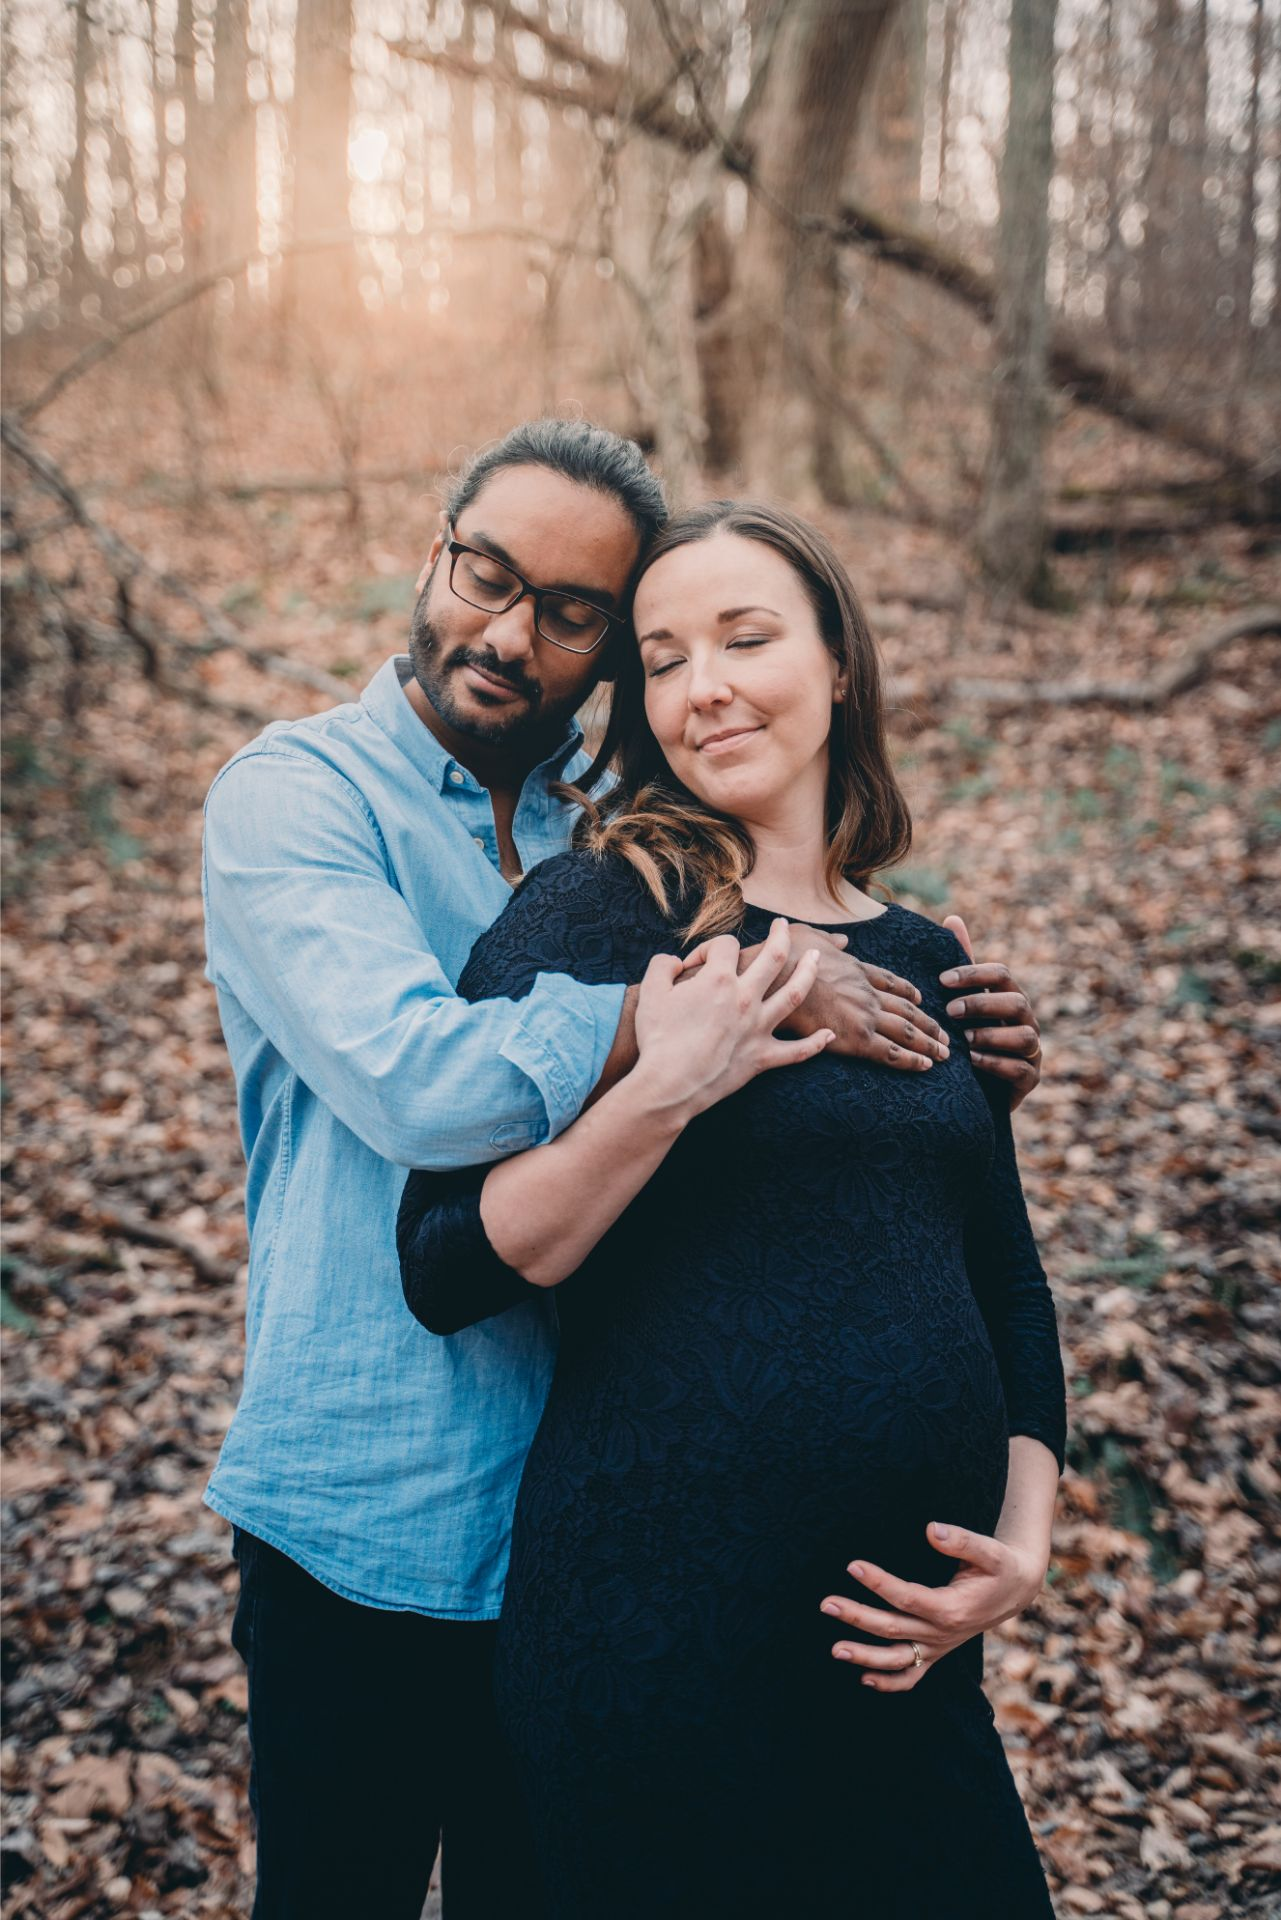 Best Maternity Photographer rock creek park editorial maternity photo session